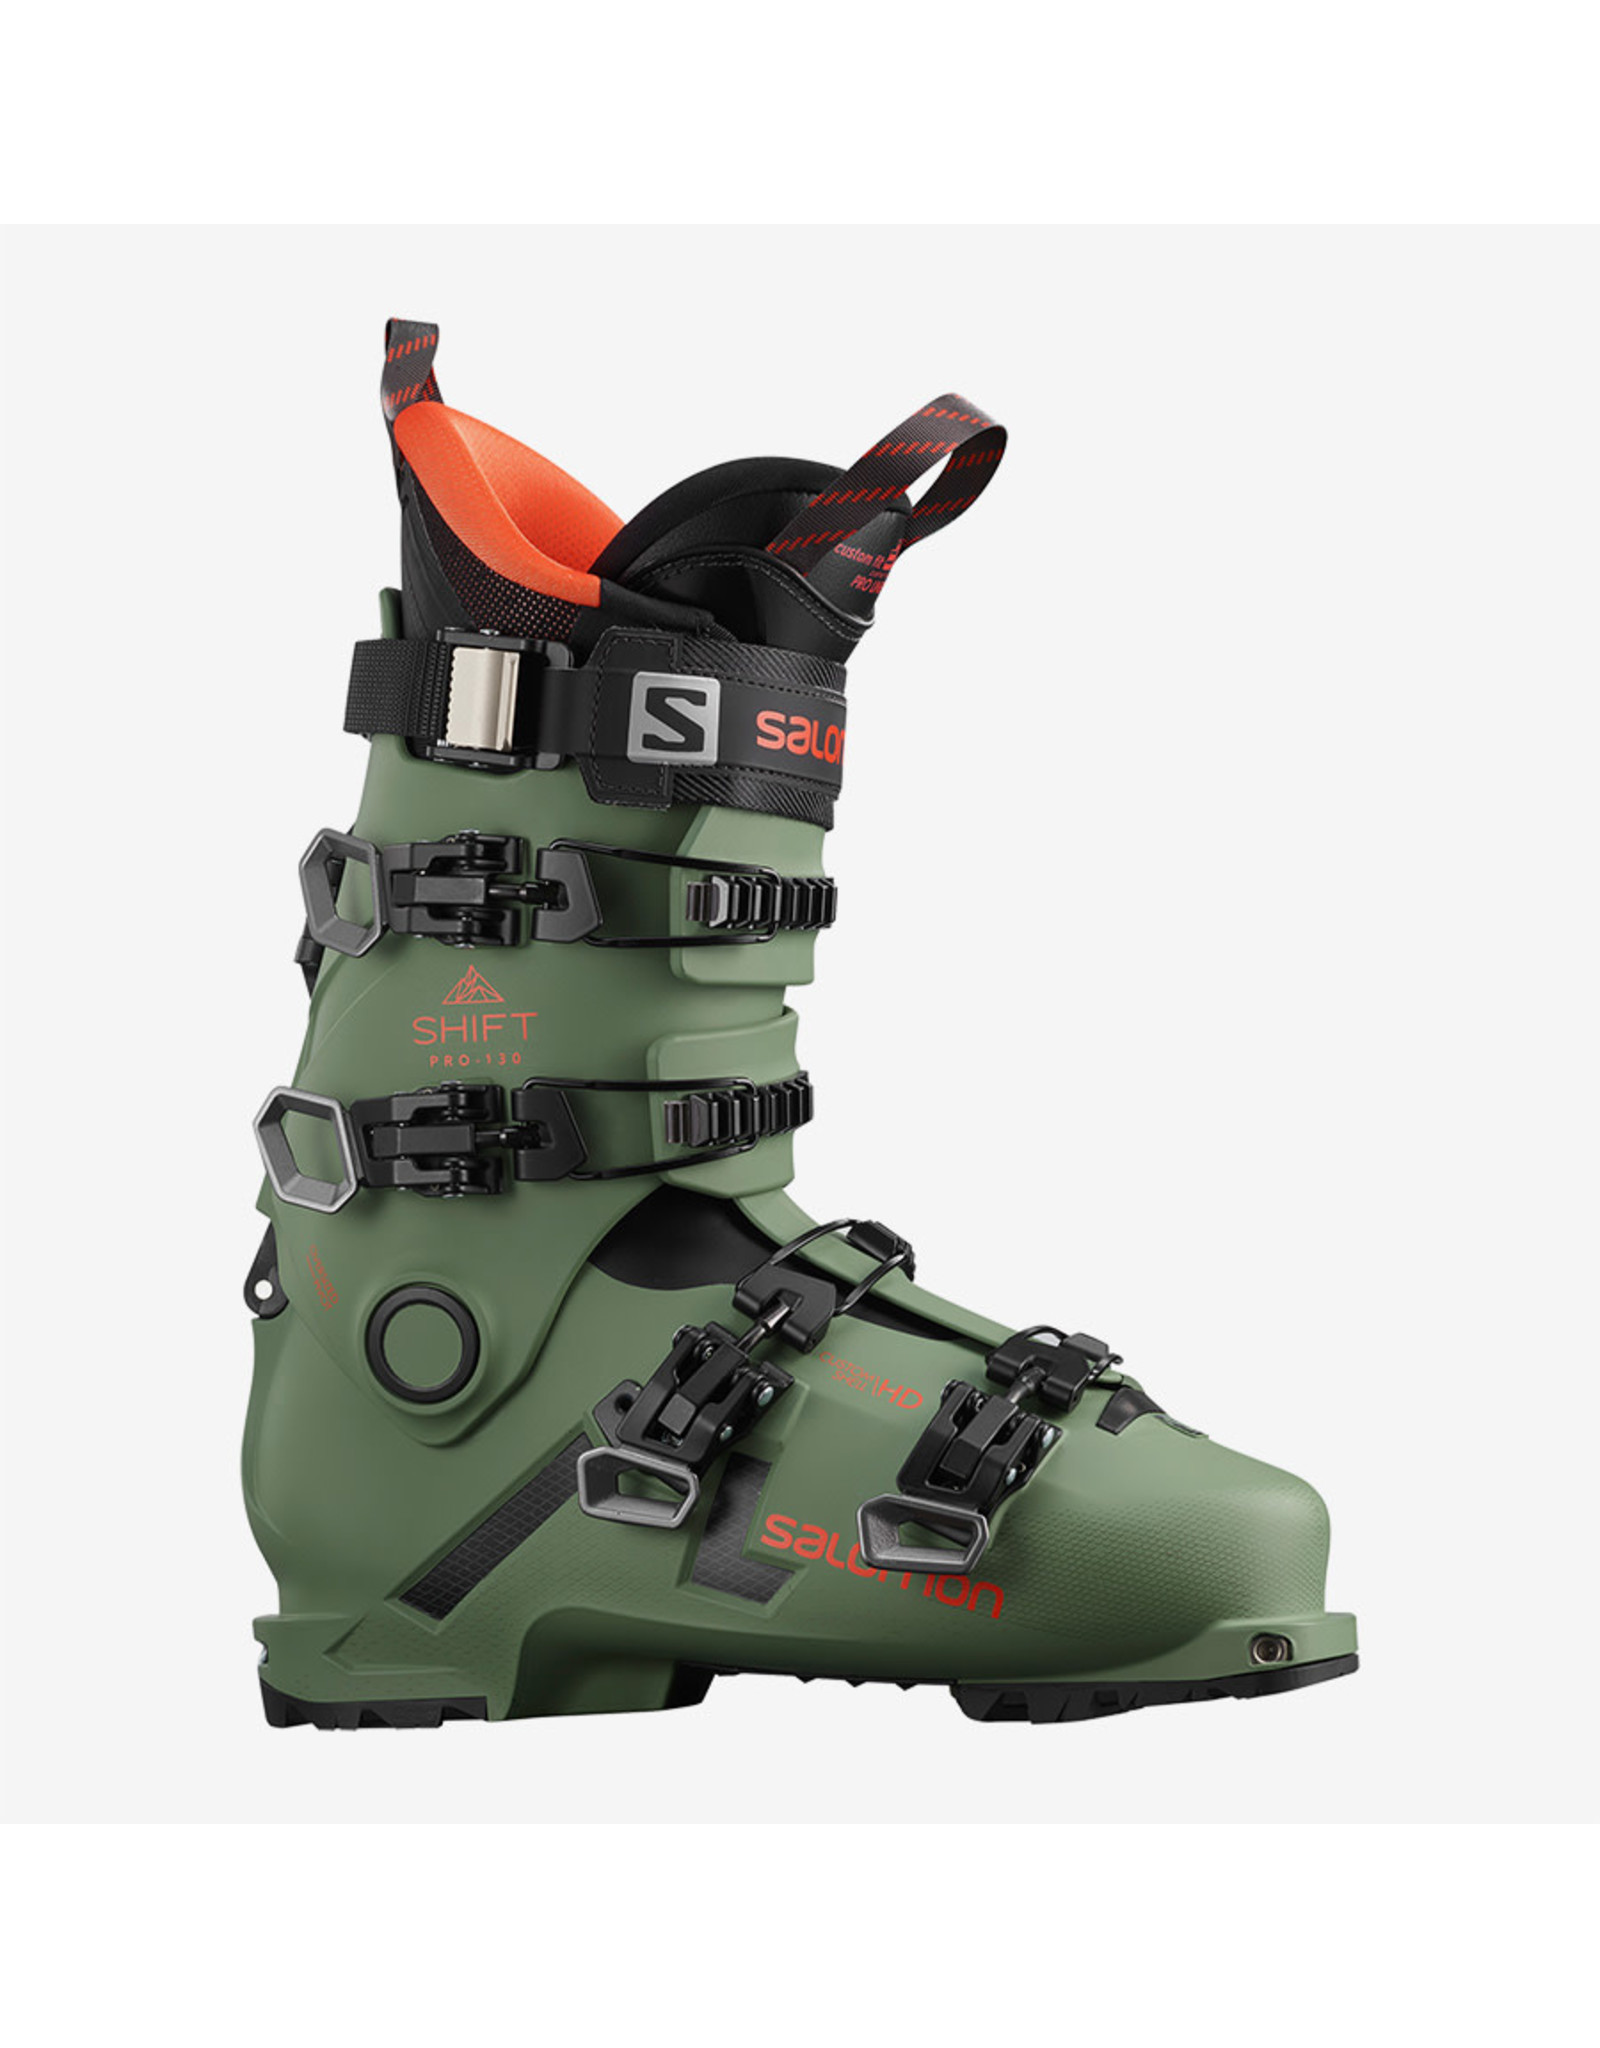 Salomon Shift Pro 130 AT Boot